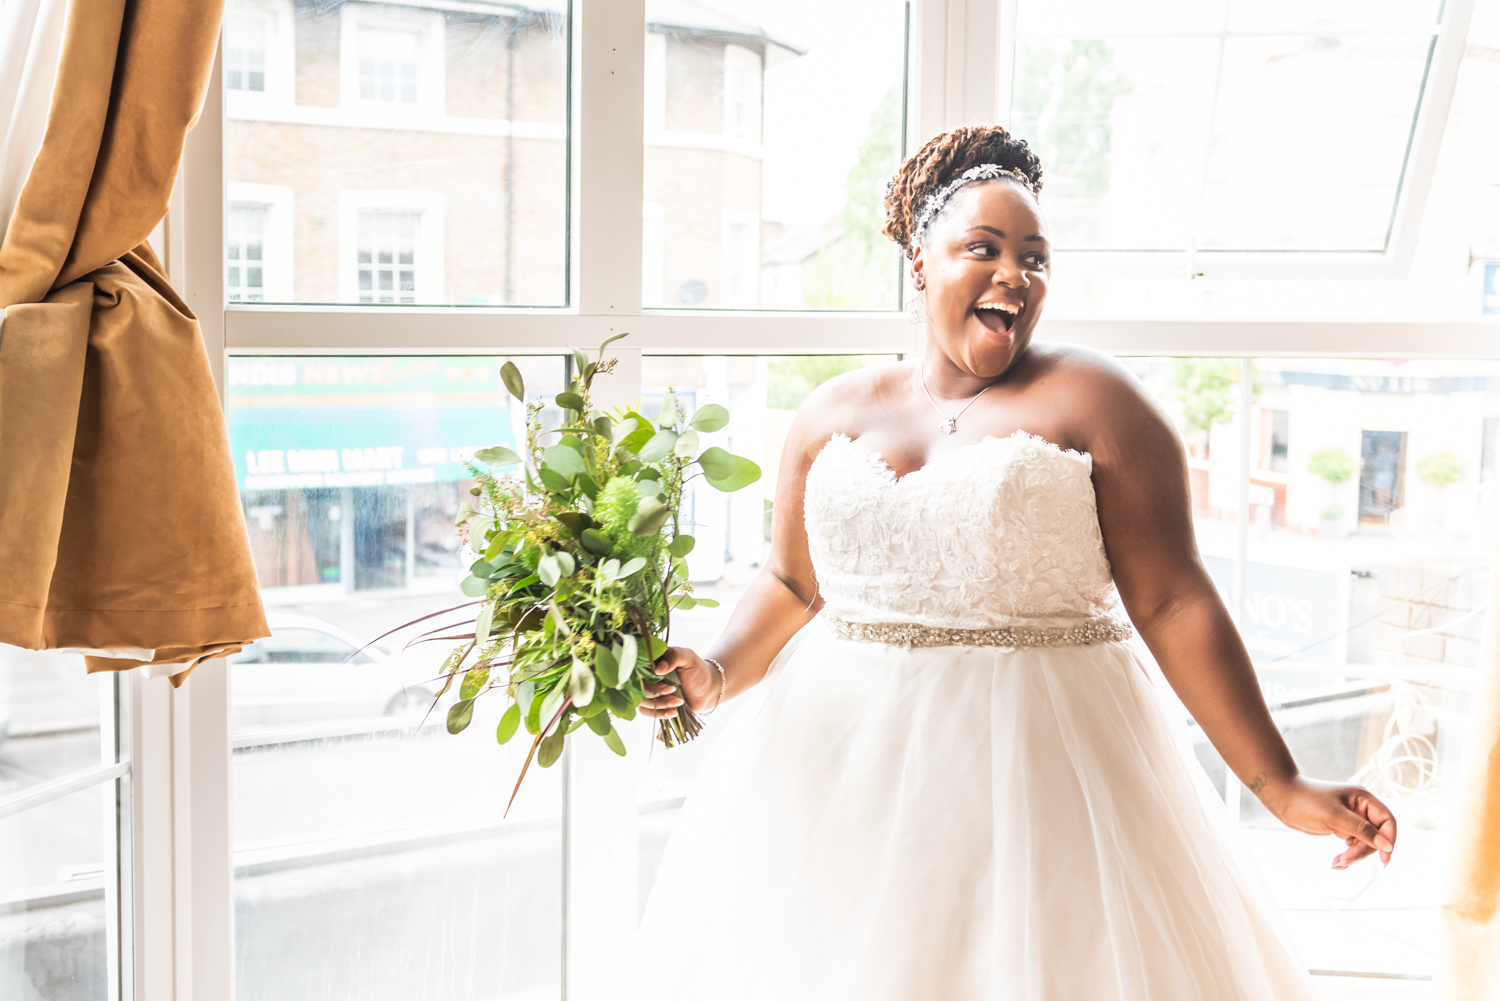 Bride getting ready piccolinoweddings south london photographer